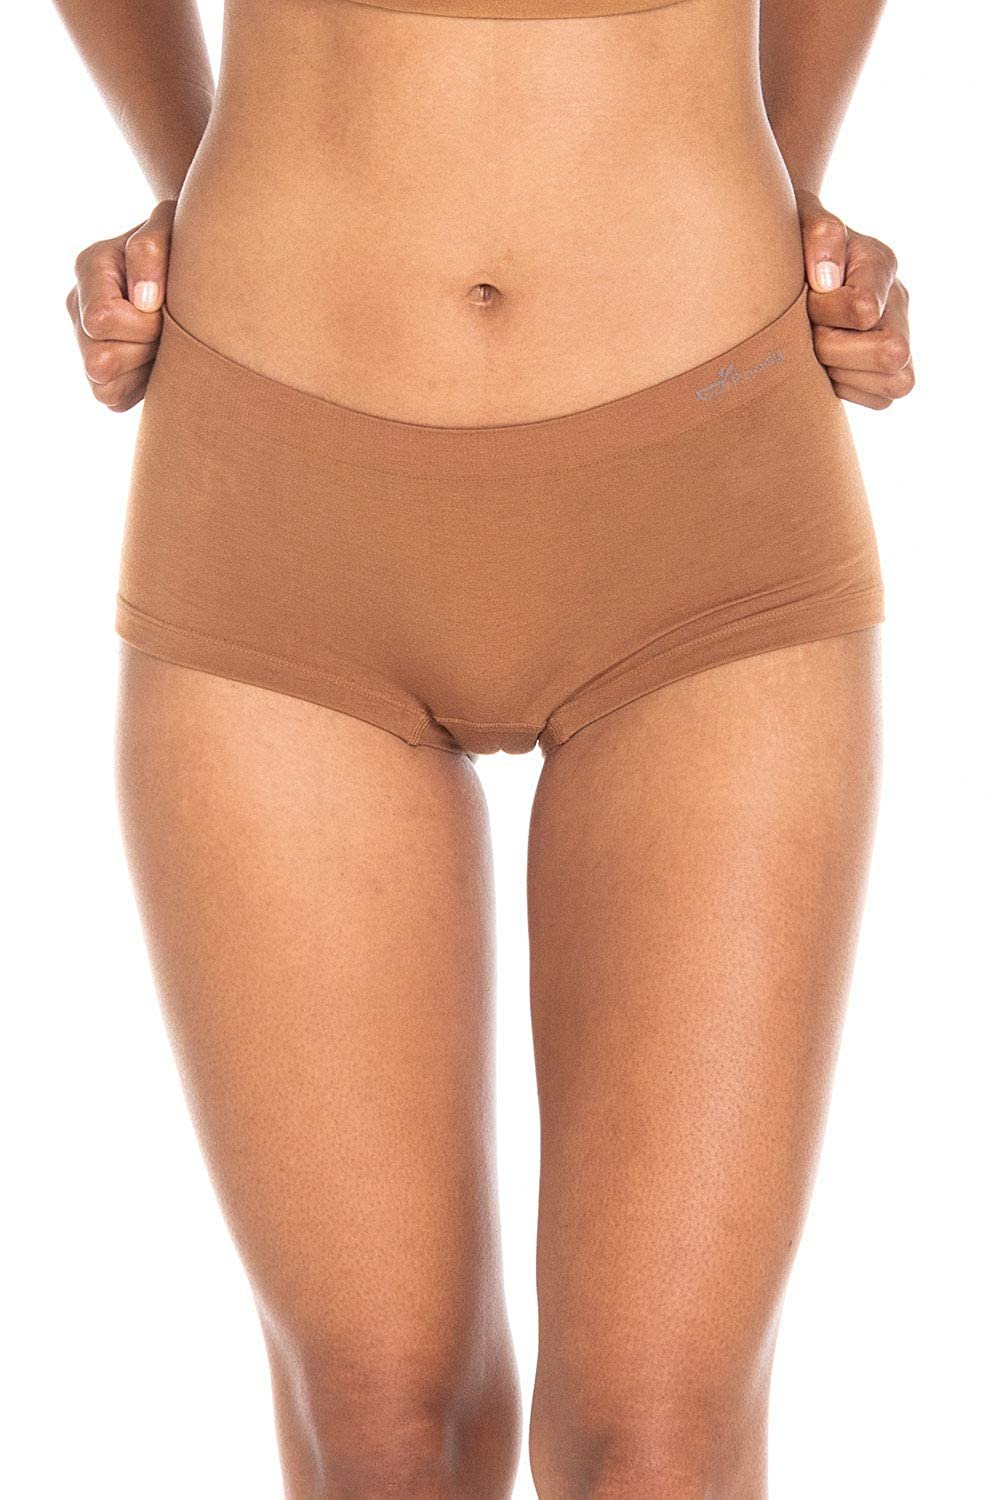 400bc1257c3f These fabulously comfy undies are seam free, have a wide waist band,  mid-rise and gentle stretch. They feel like you're wearing nothing ...